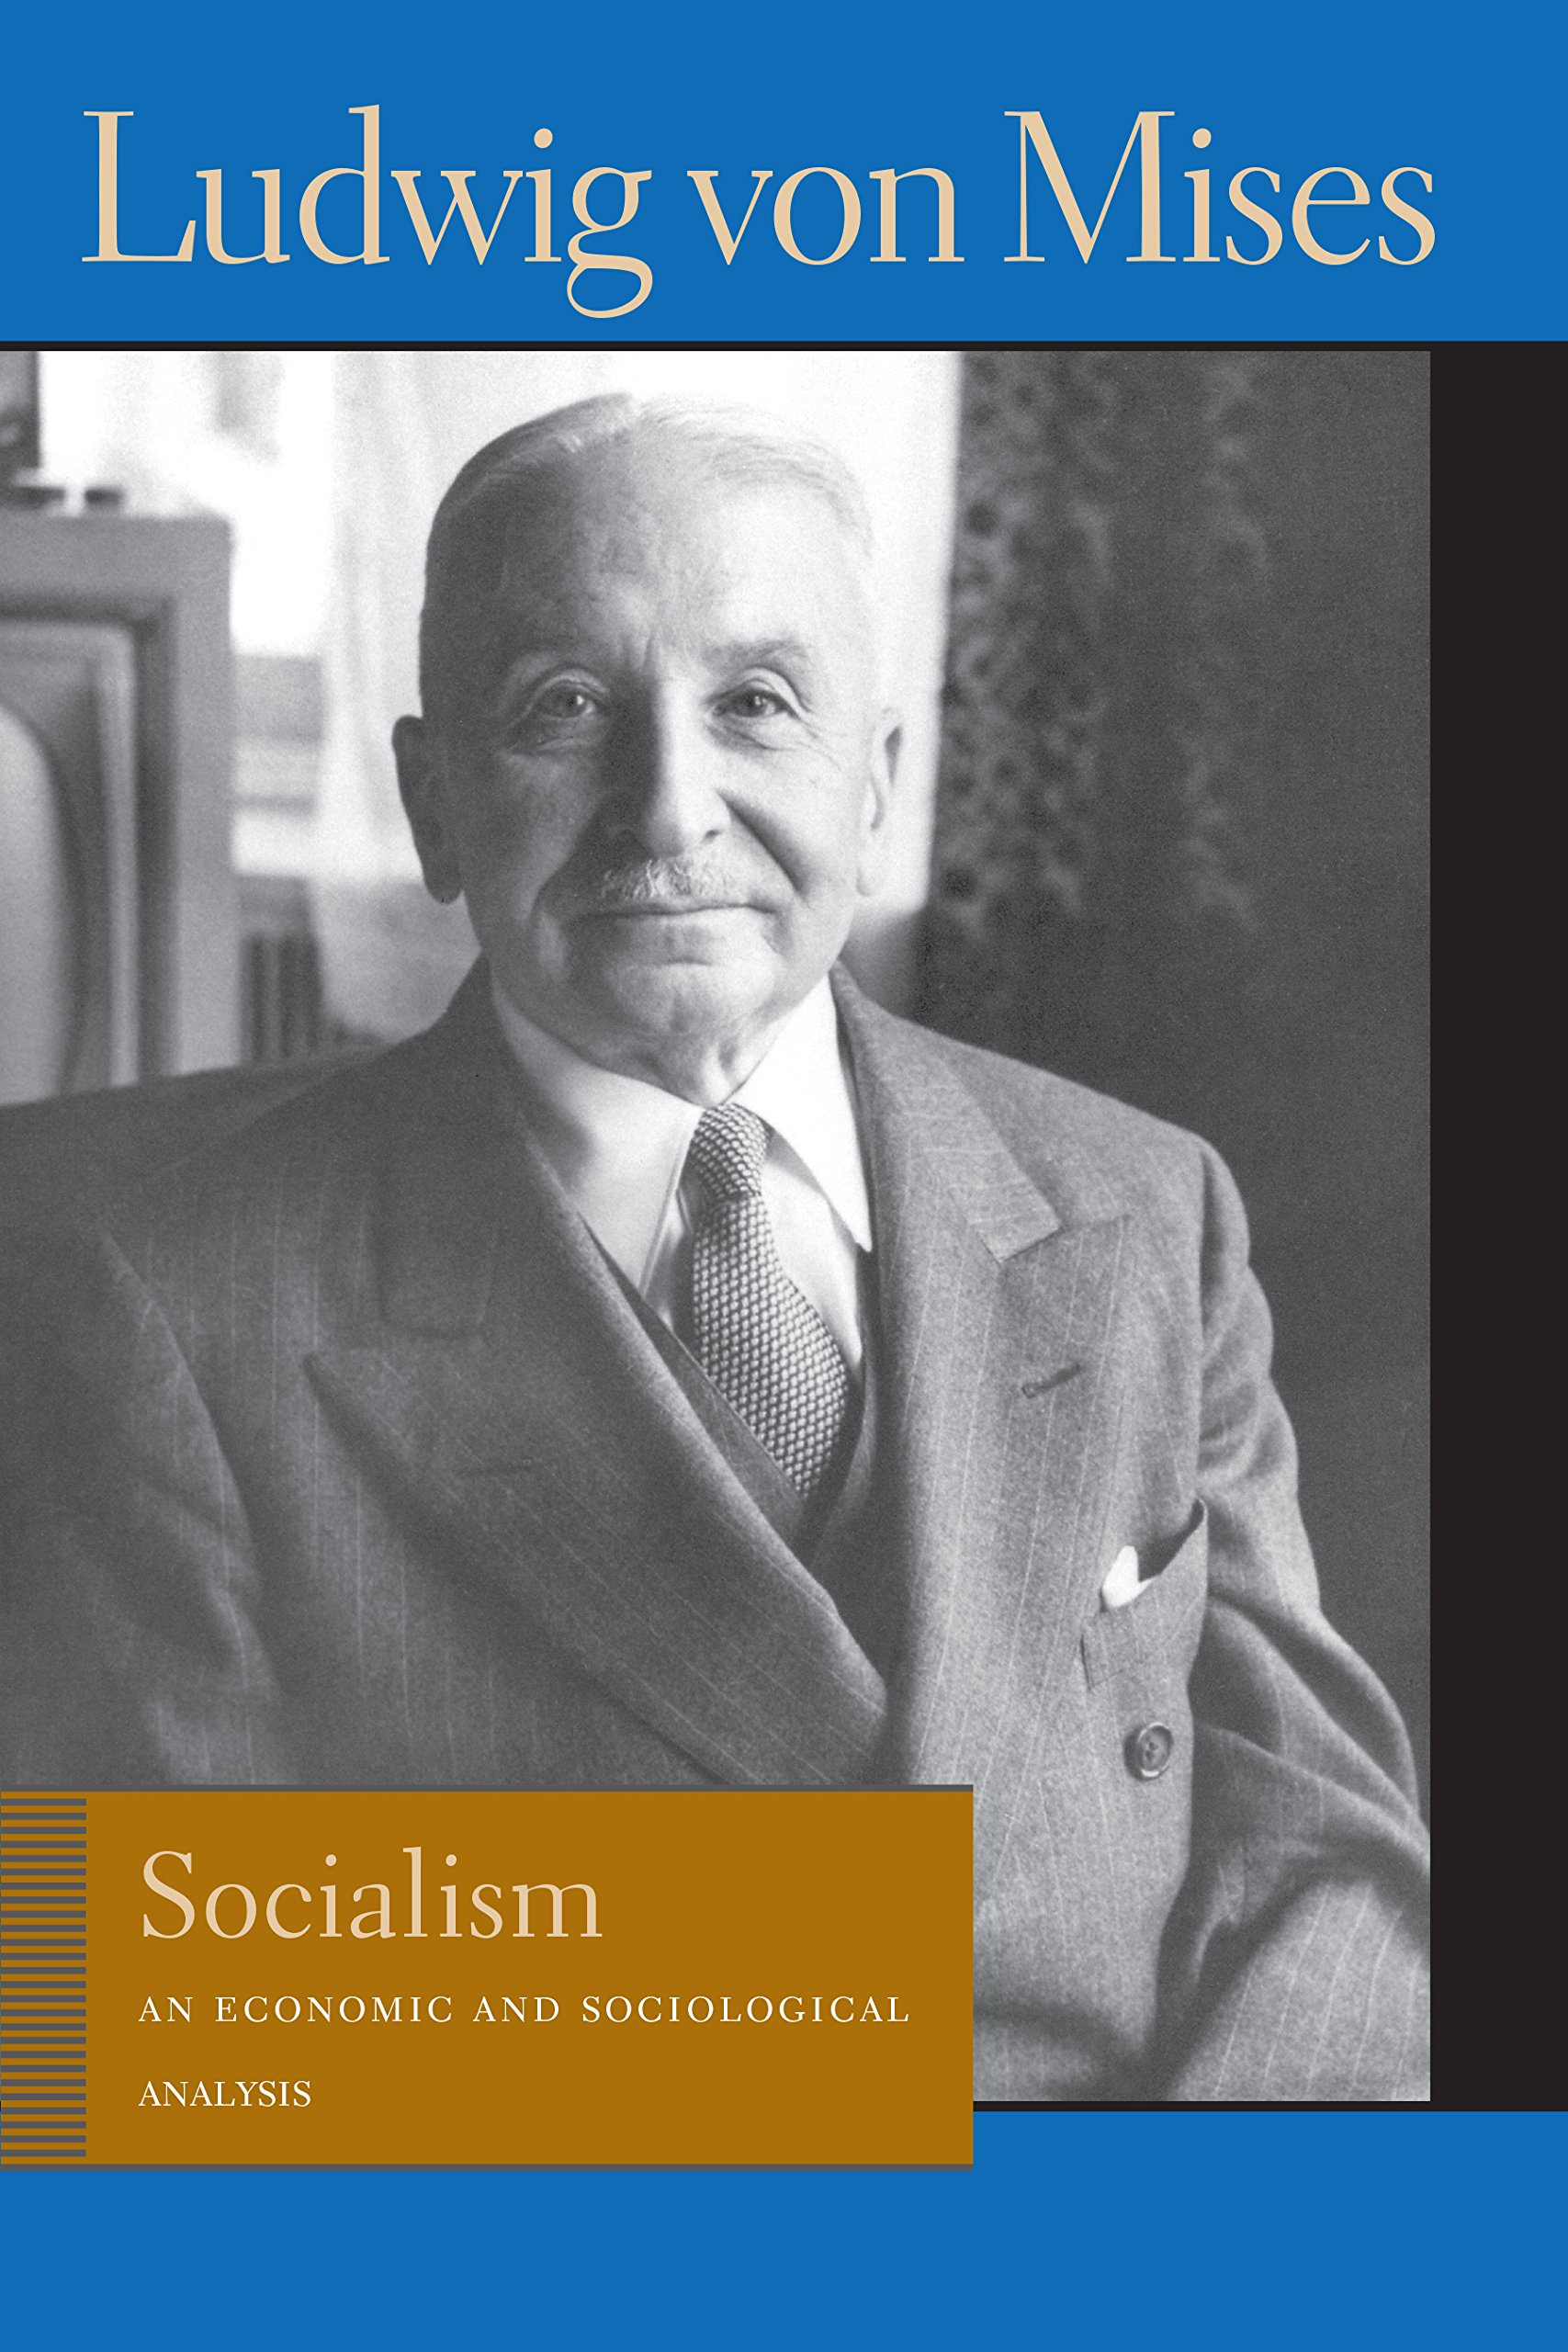 Download Socialism: An Economic and Sociological Analysis (Lib Works Ludwig Von Mises CL) pdf